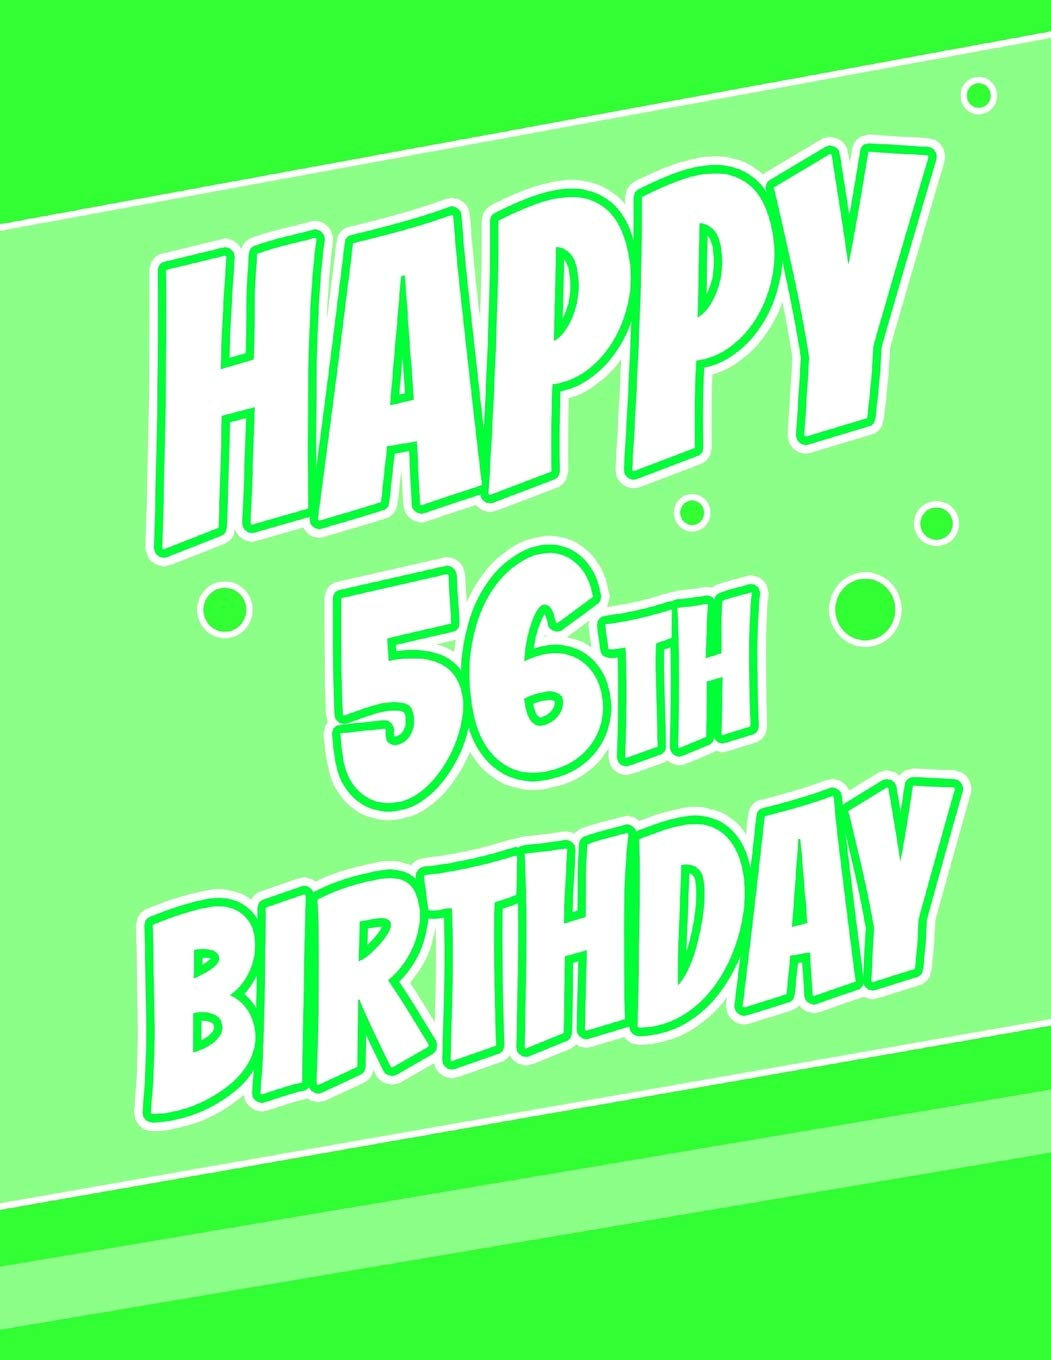 Happy 56th Birthday Better Than A Card Password Keeper Or Notebook Groovy Green Record Email Address Usernames Passwords Security